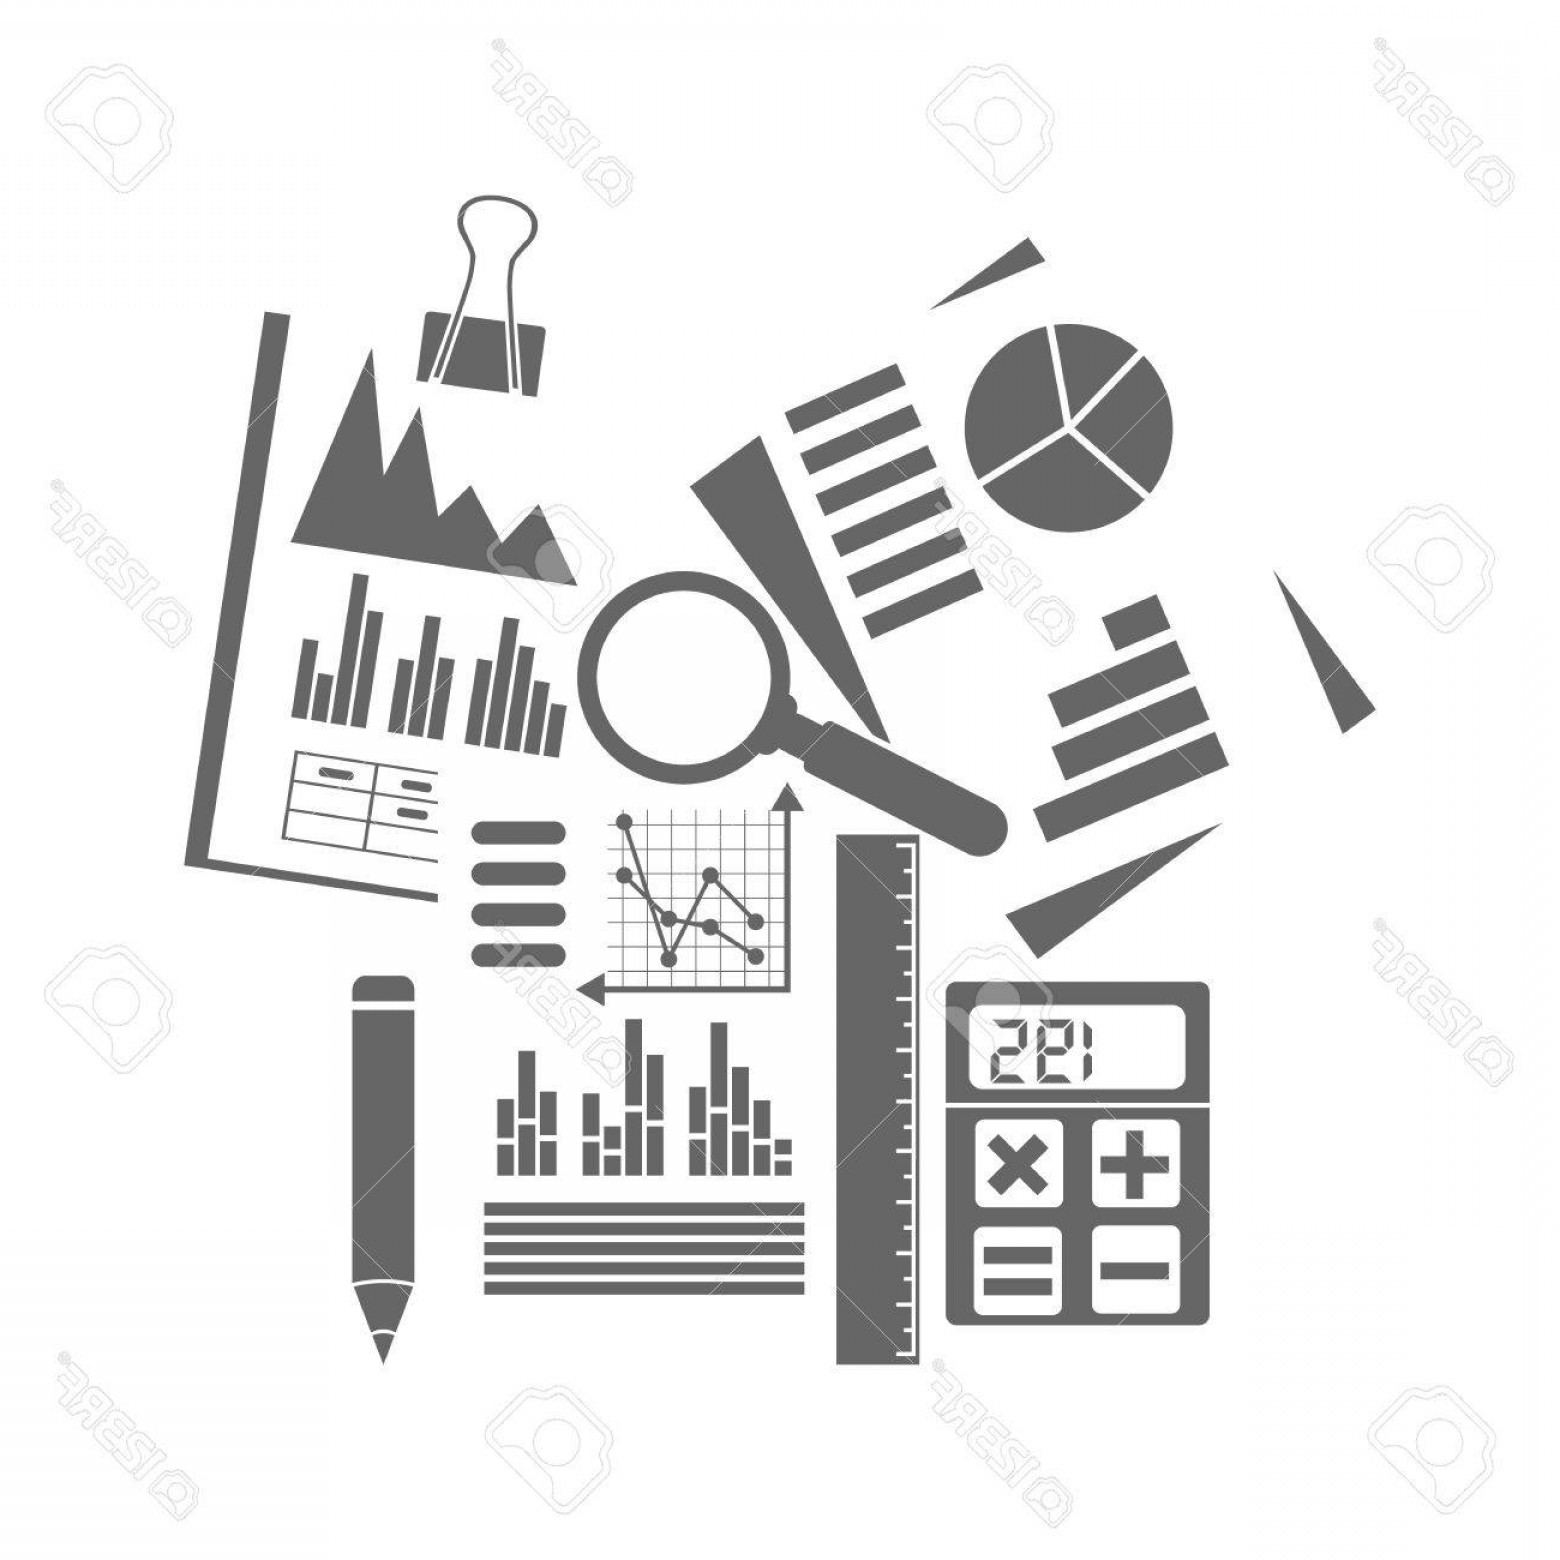 Vector Black And White Organization: Photostock Vector Financial Accounting Concept Organization Process Analytics Research Budget Planning Report Market A